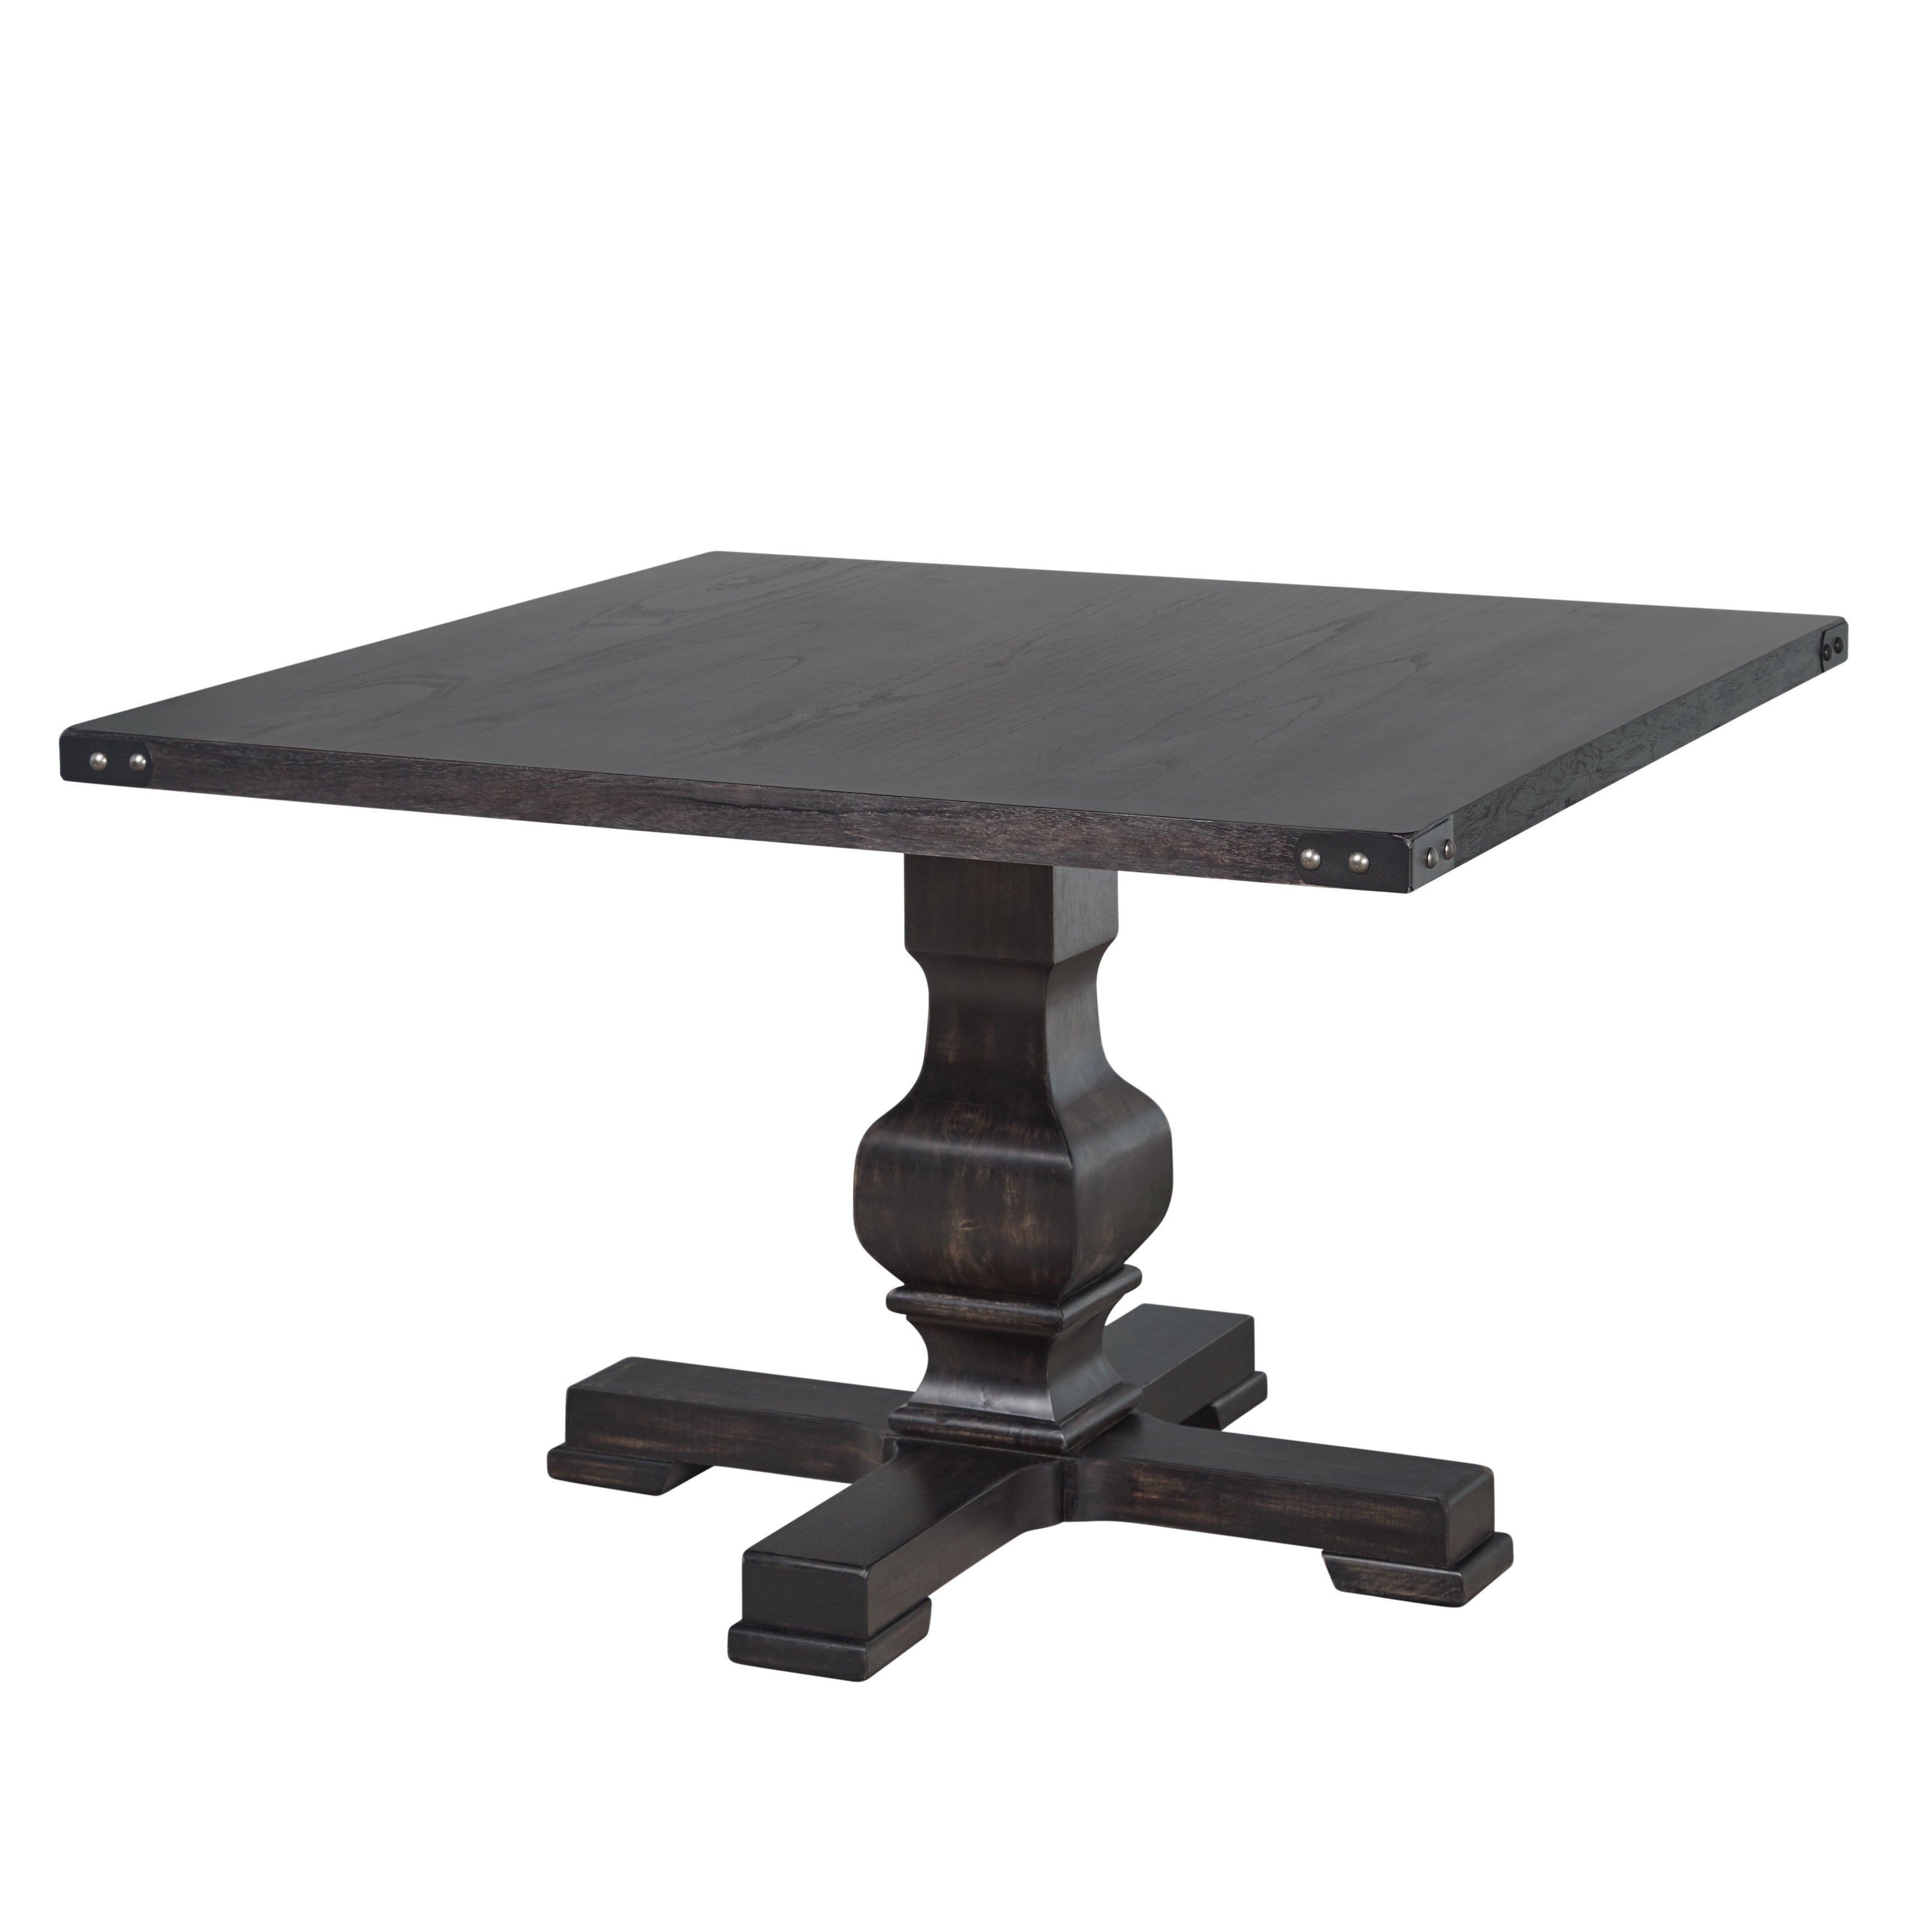 ikea casual ceiling set remodel table designs home black cool living round wood s image pedestal of dining room high sets contemporary